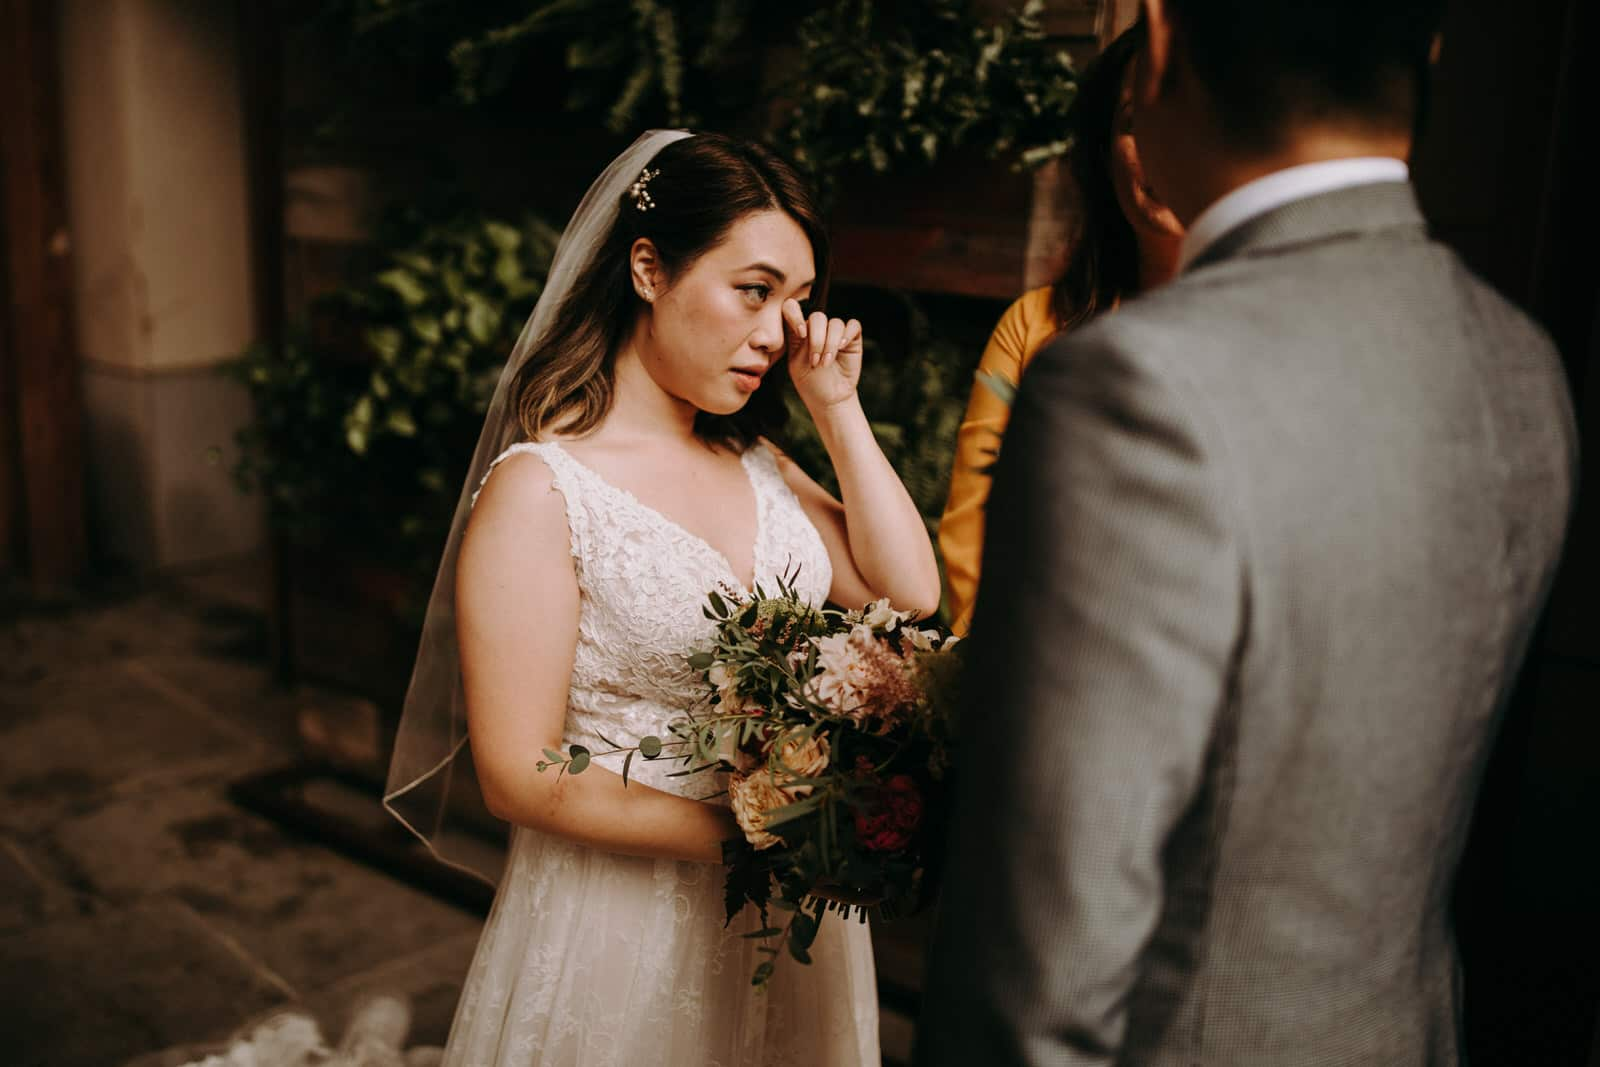 A wedding couple is getting married and the bride is getting emotional.